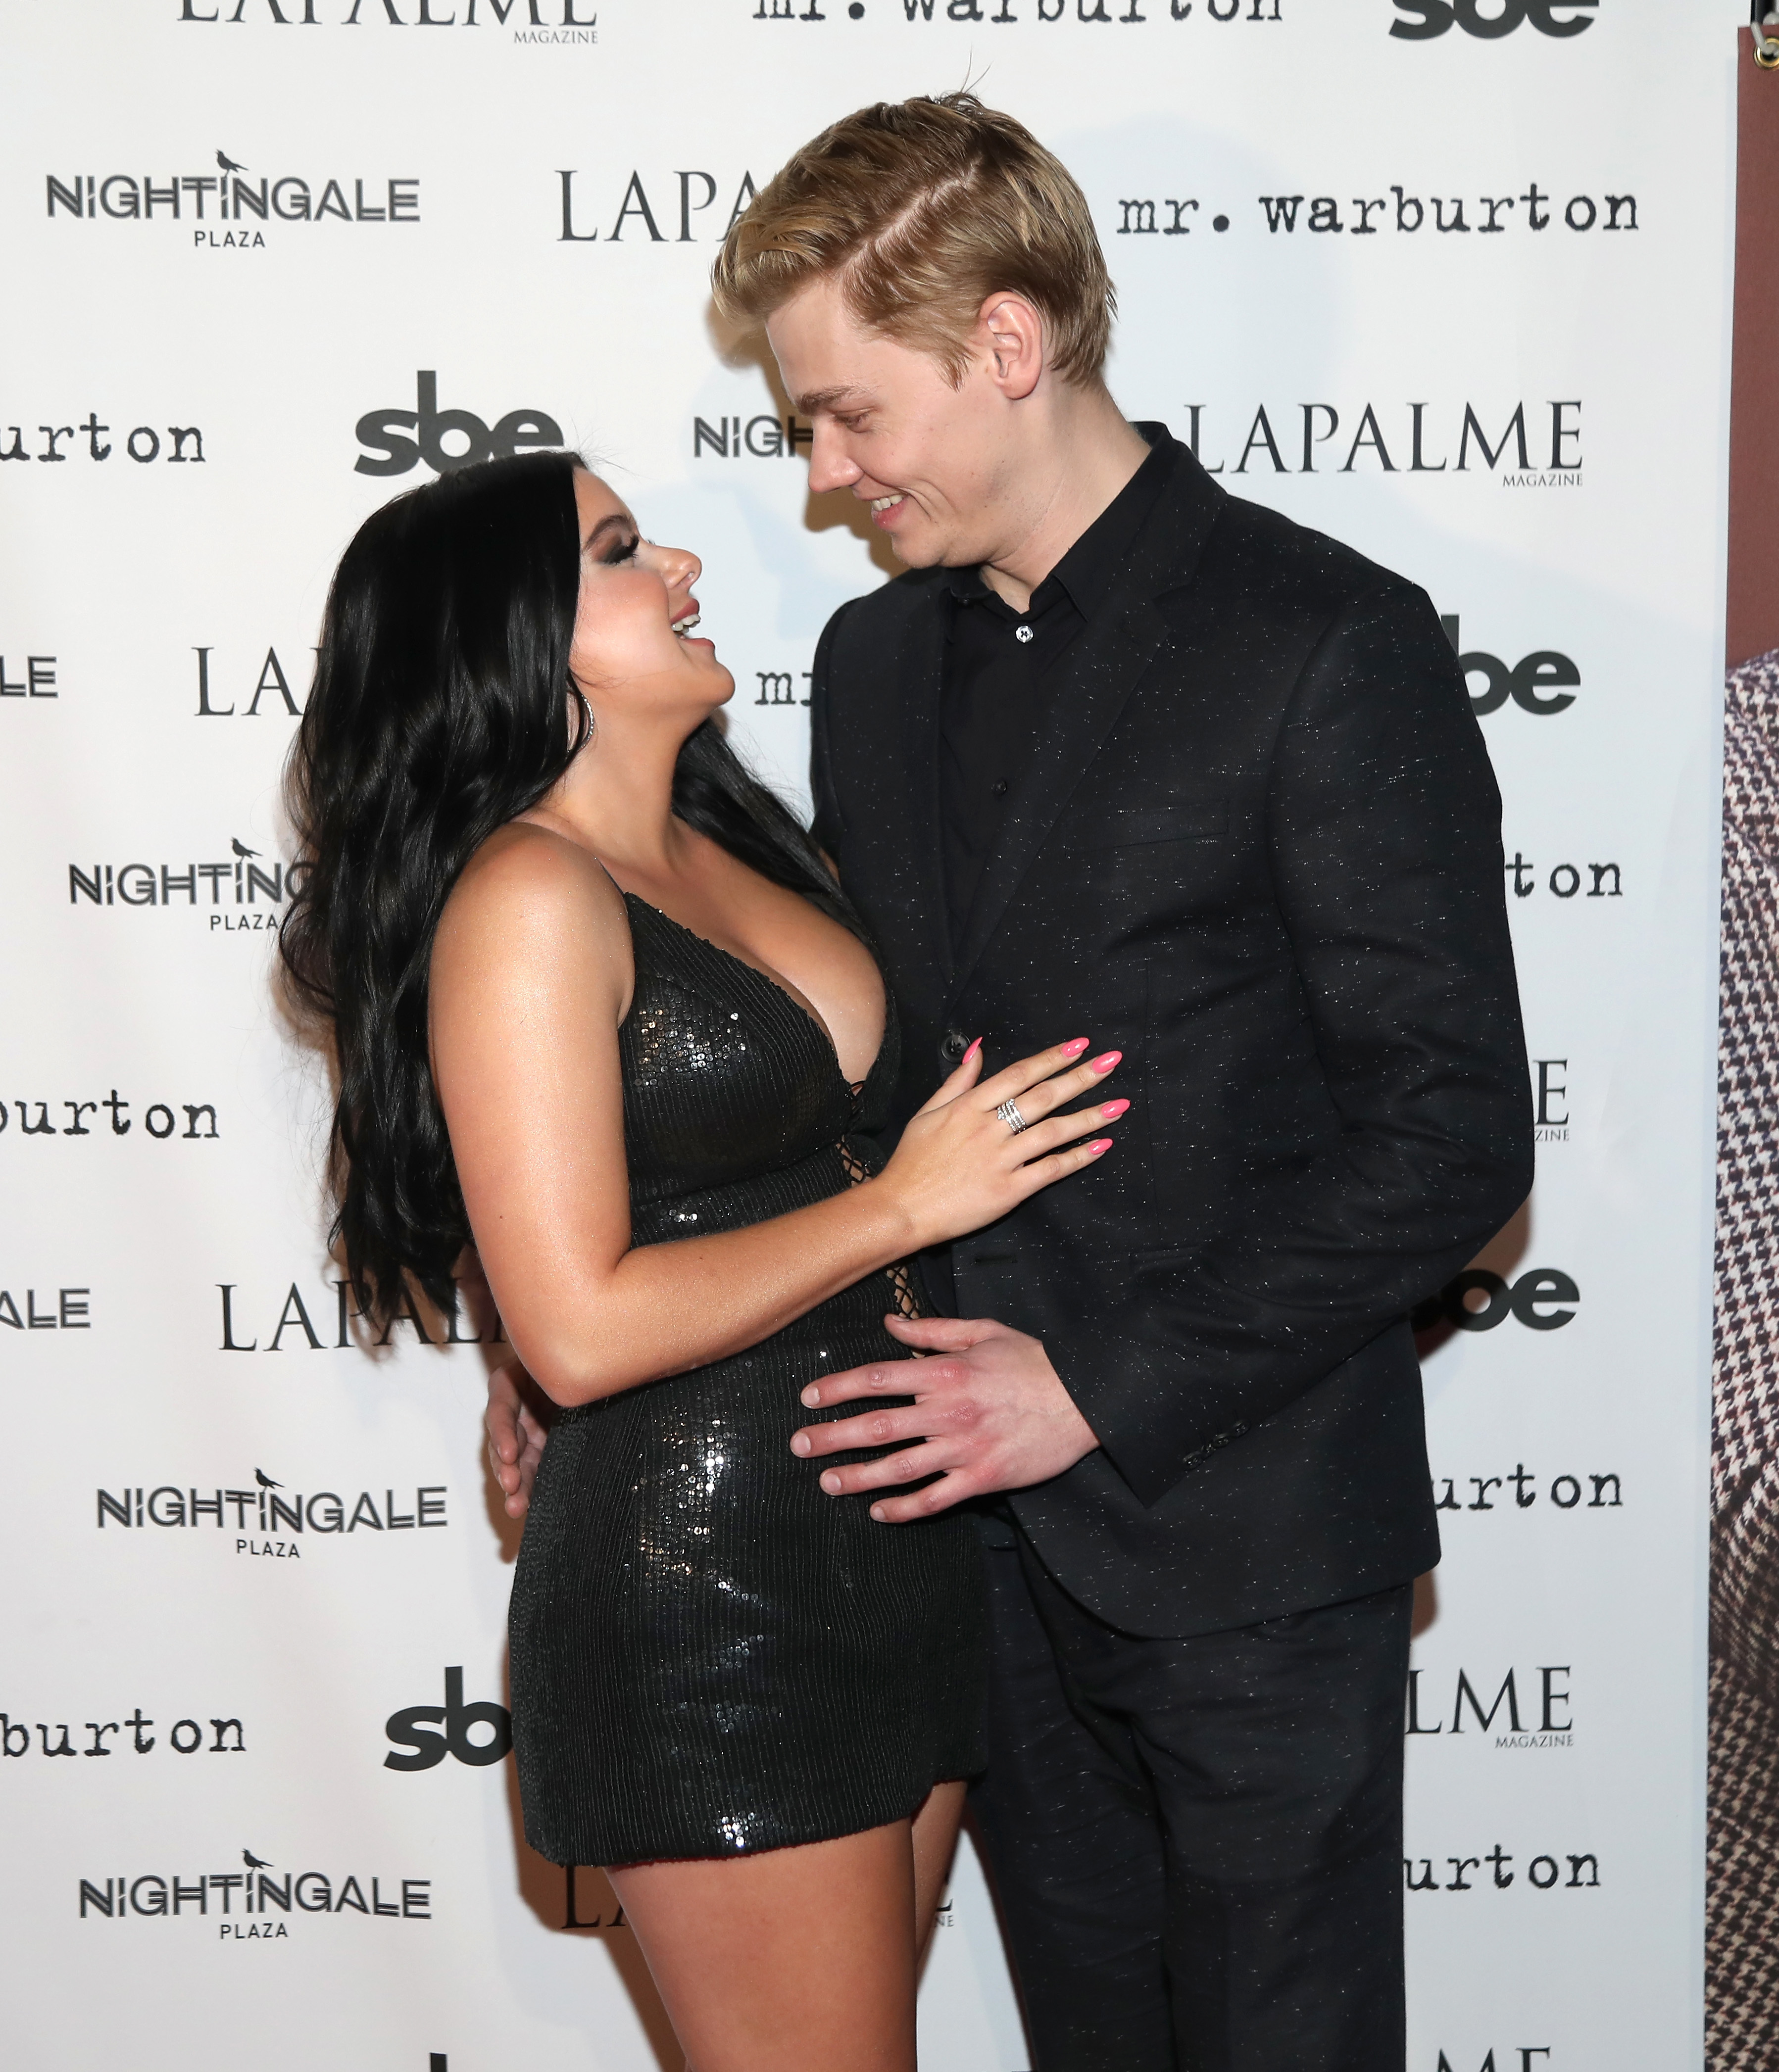 Ariel Winter and Levi Meaden attend LaPalme Magazine fall cover party at Nightingale Plaza in Los Angeles on Nov. 8, 2017.